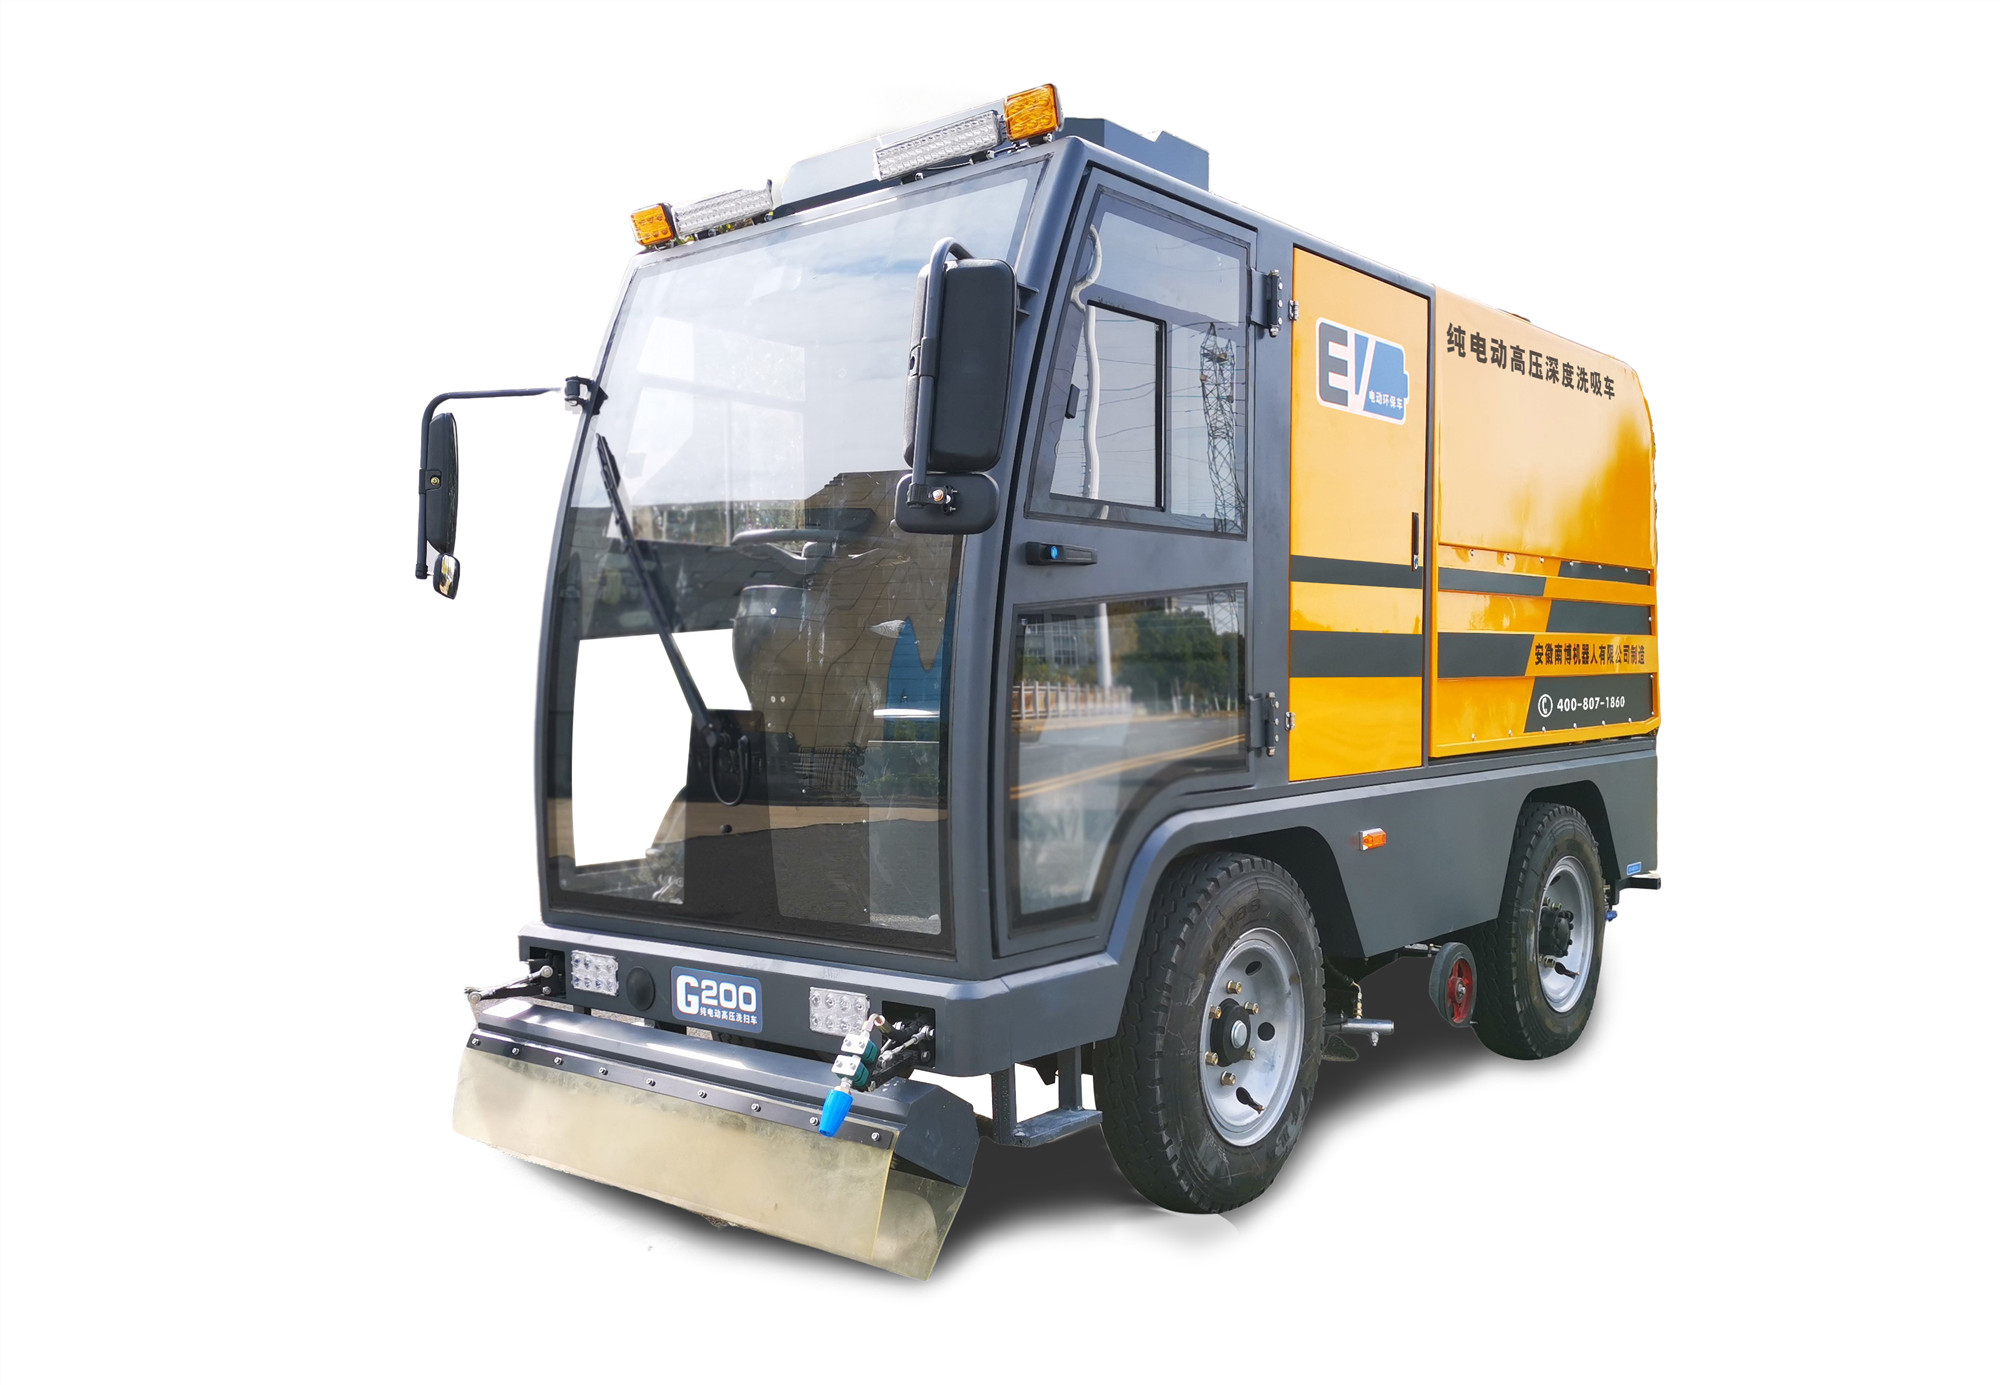 G200 AUTOMATIC HIGH PRESSURE WASHING VEHICLE